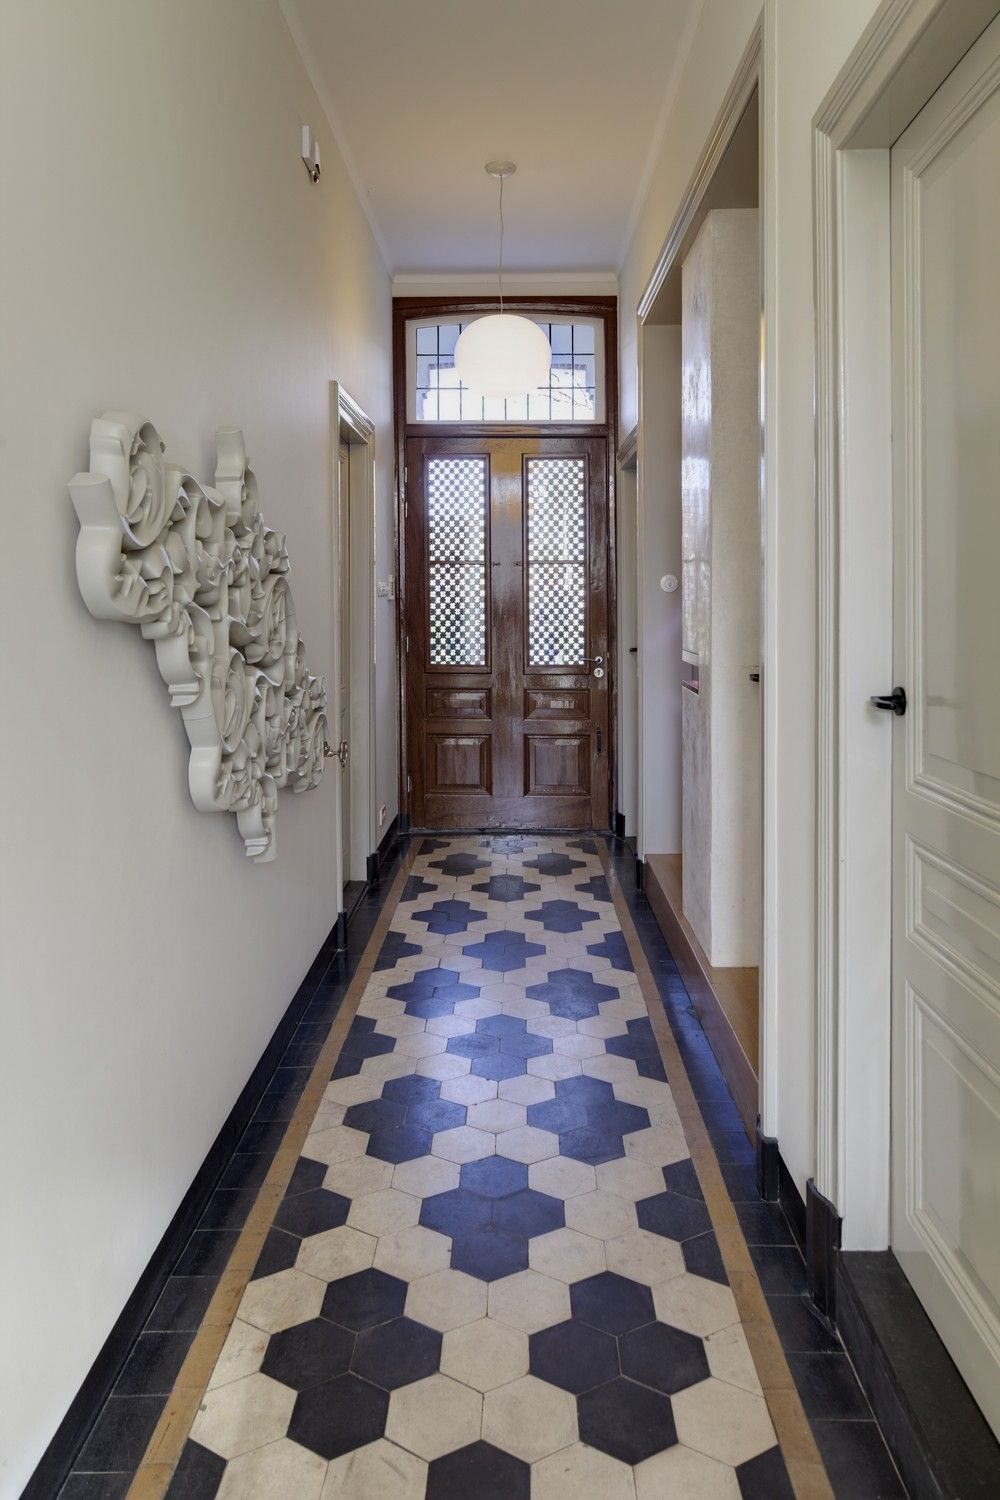 Wonderful Chequered Tiles In The Entryway Lots Of Natural Light - Edwardian house interiors